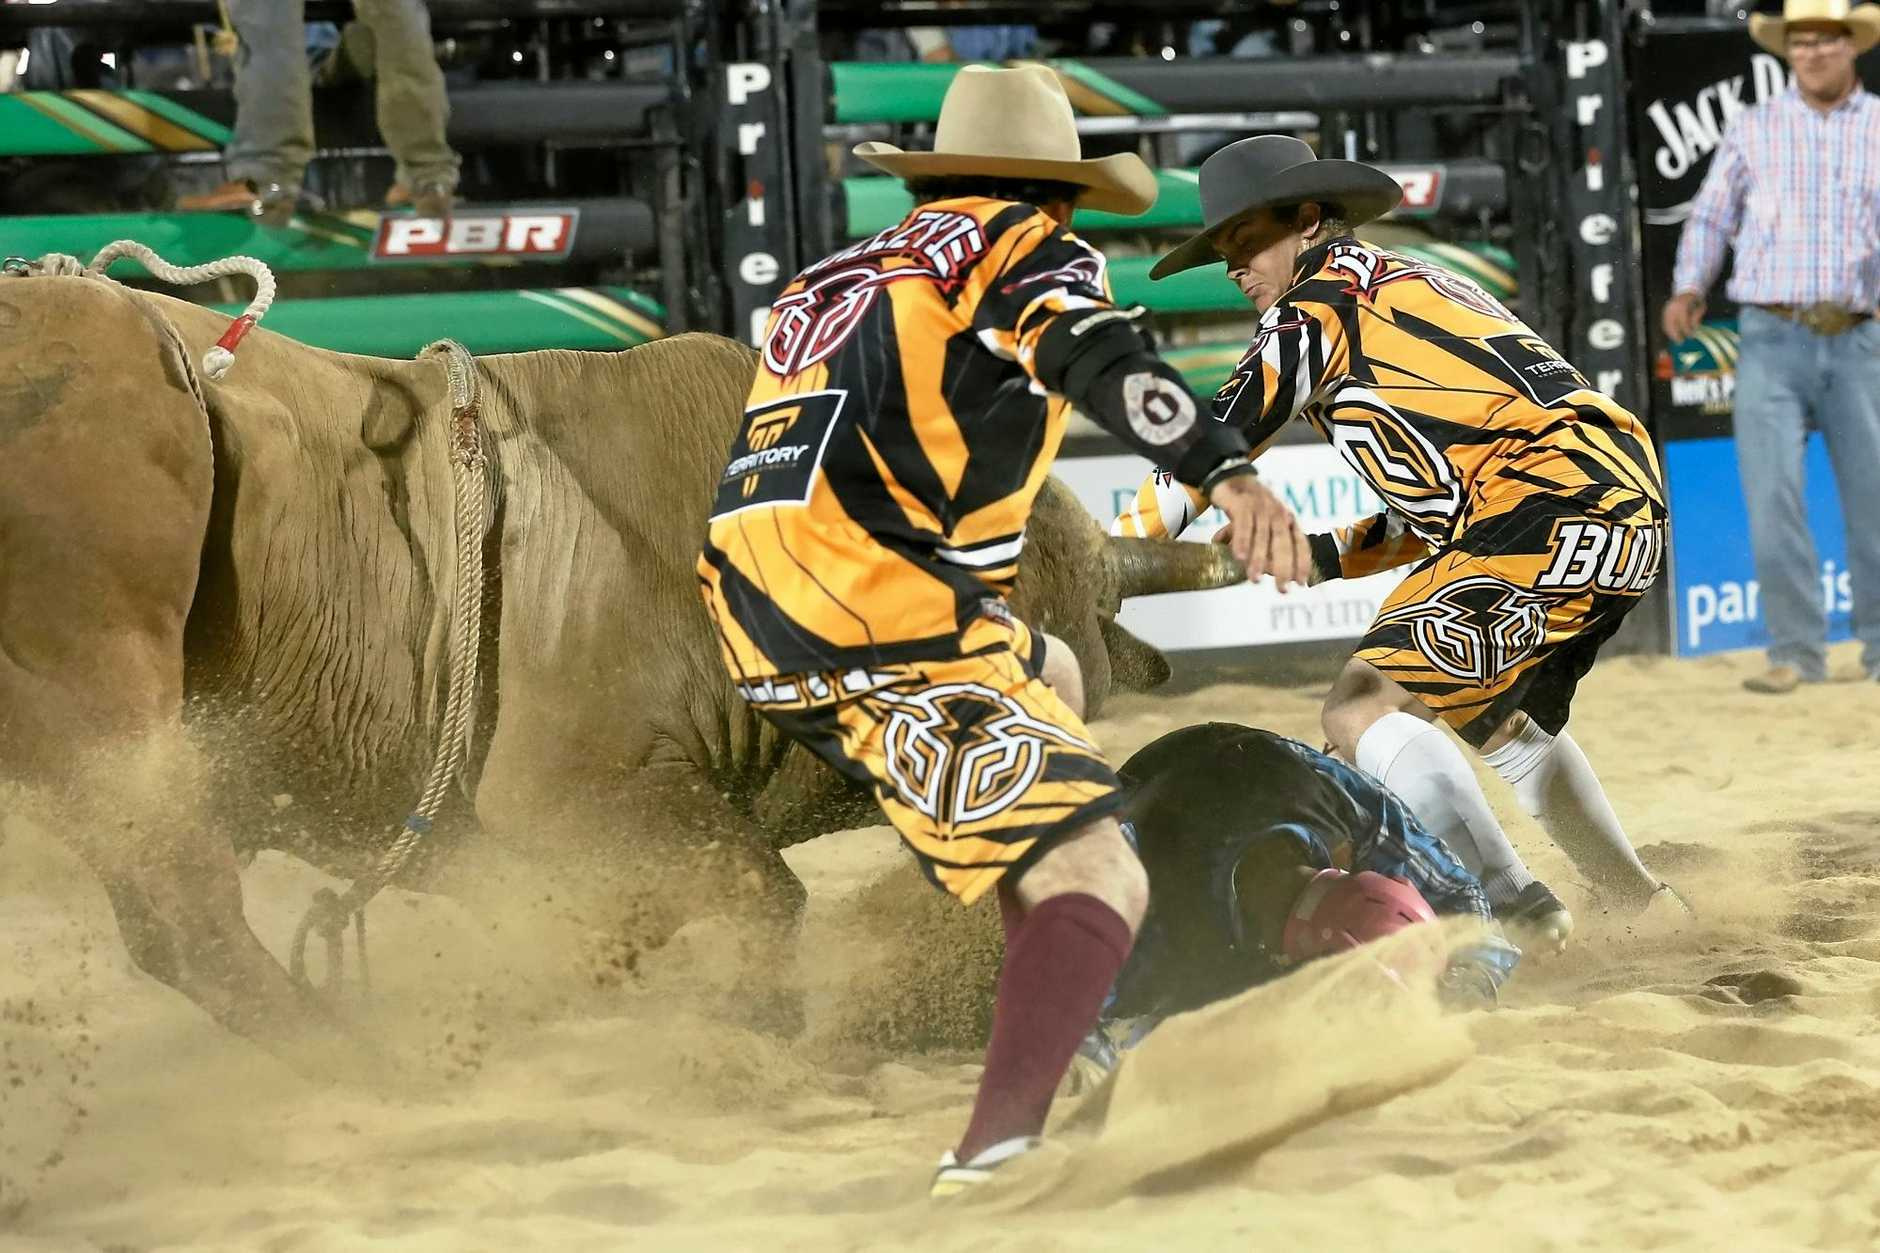 PBR protection athlete Kerry Whitehouse puts his body on the line to protect bull riders in the arena.